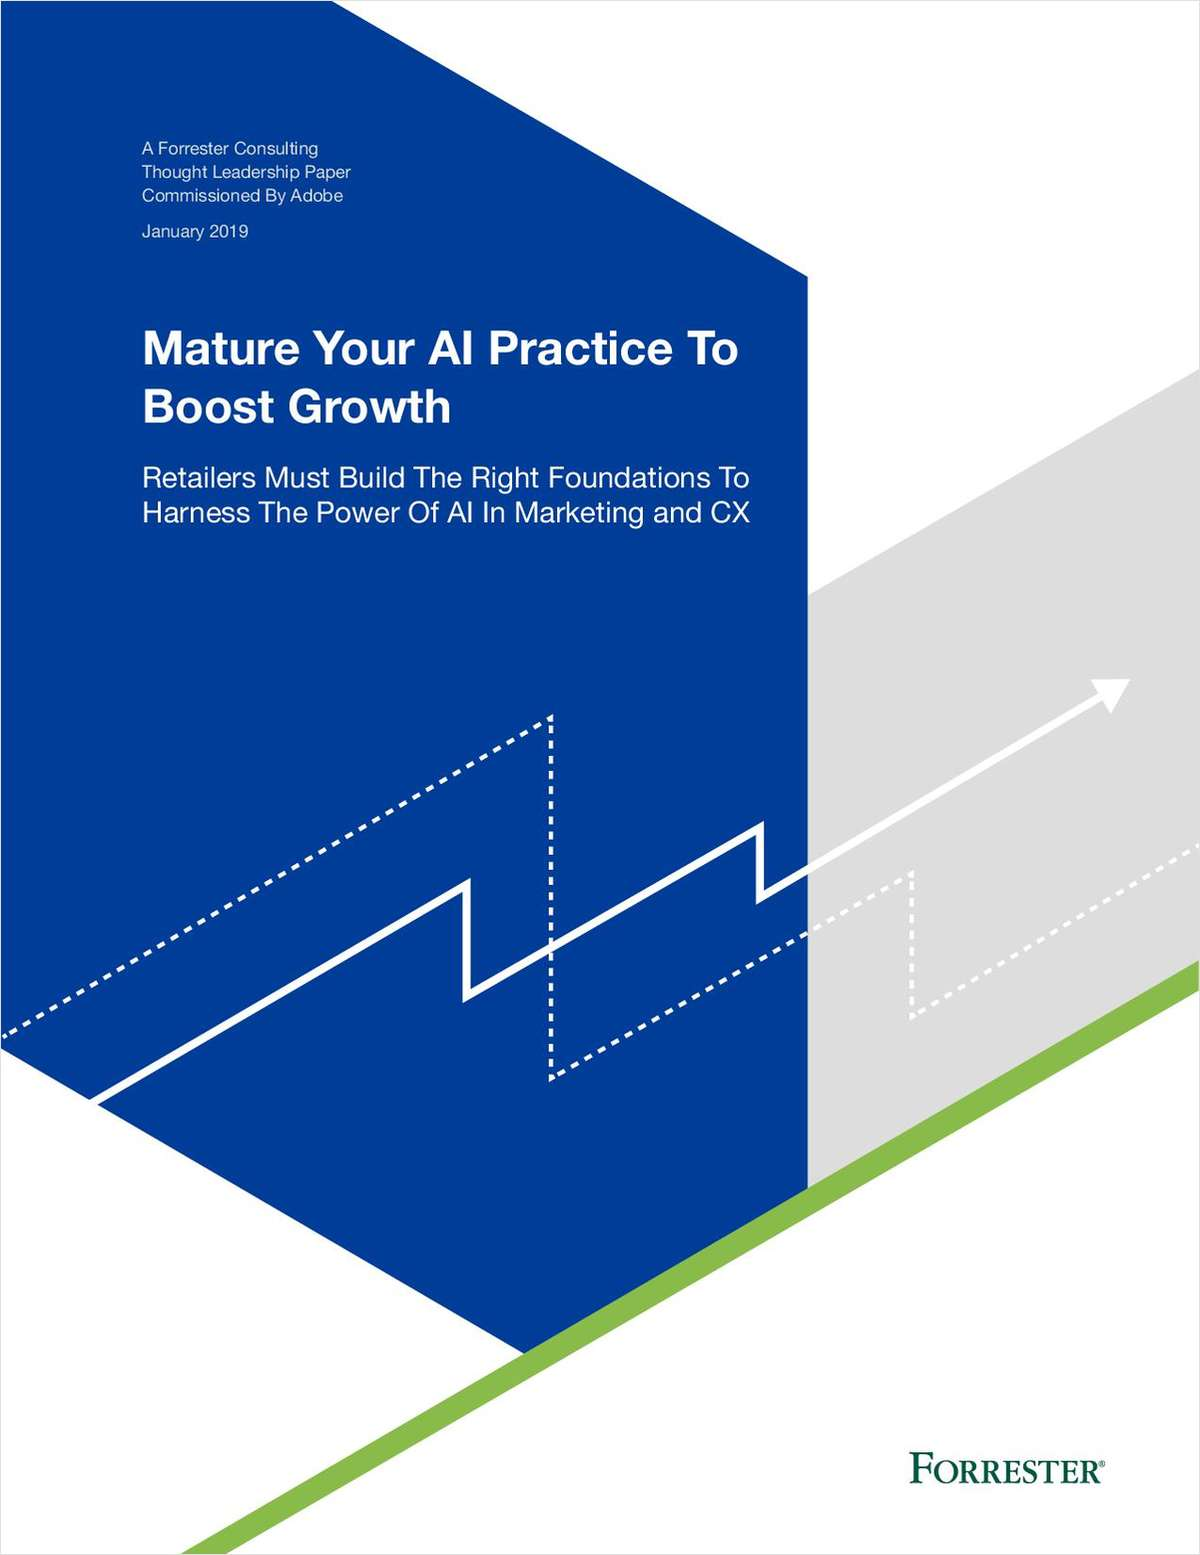 Mature Your AI Practice To Boost Growth